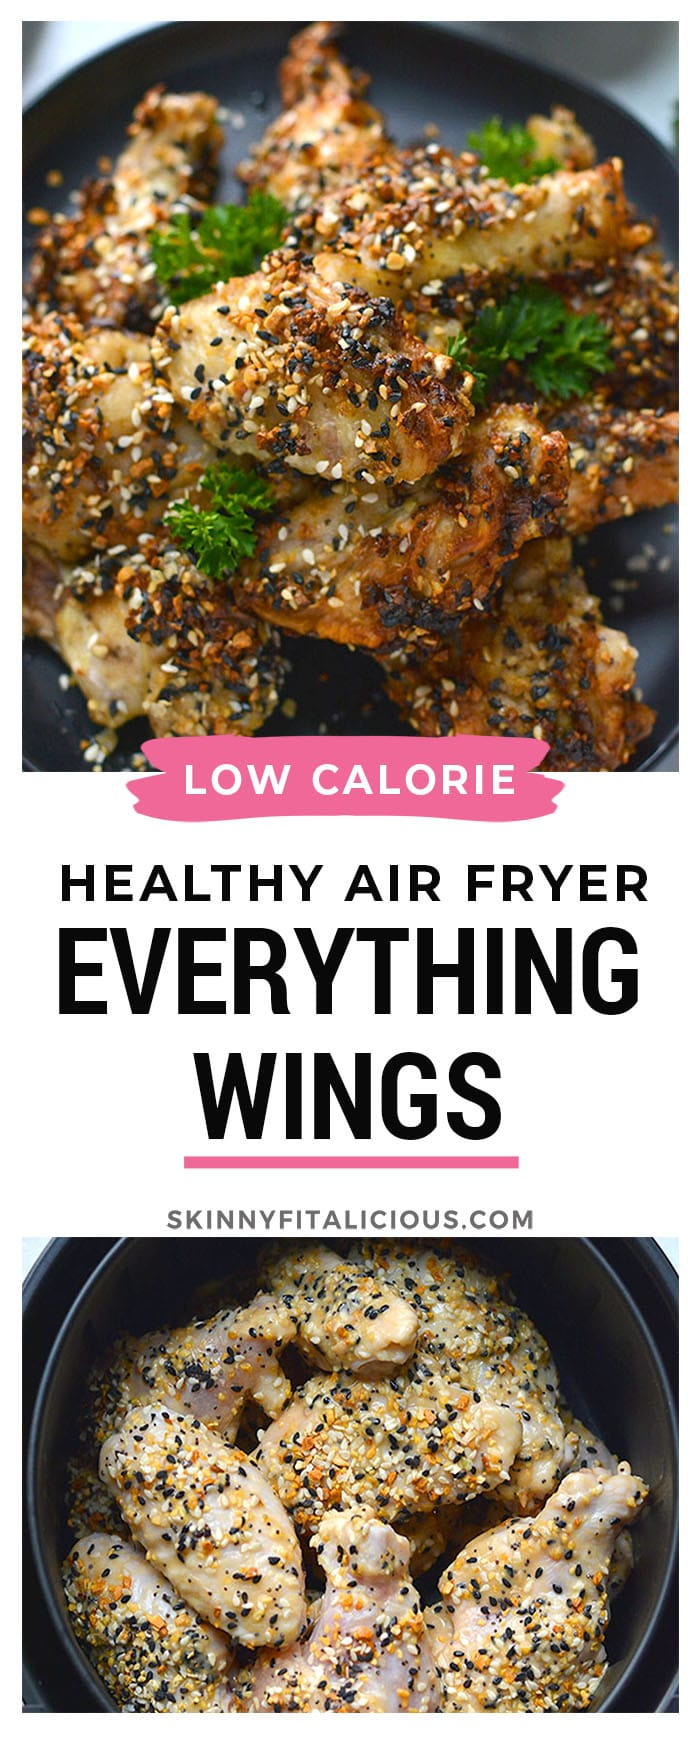 Healthy Air Fryer Everything Bagel Chicken Wings are un-breaded and air fried making them fewer calories than traditional fried wings and are gluten free.